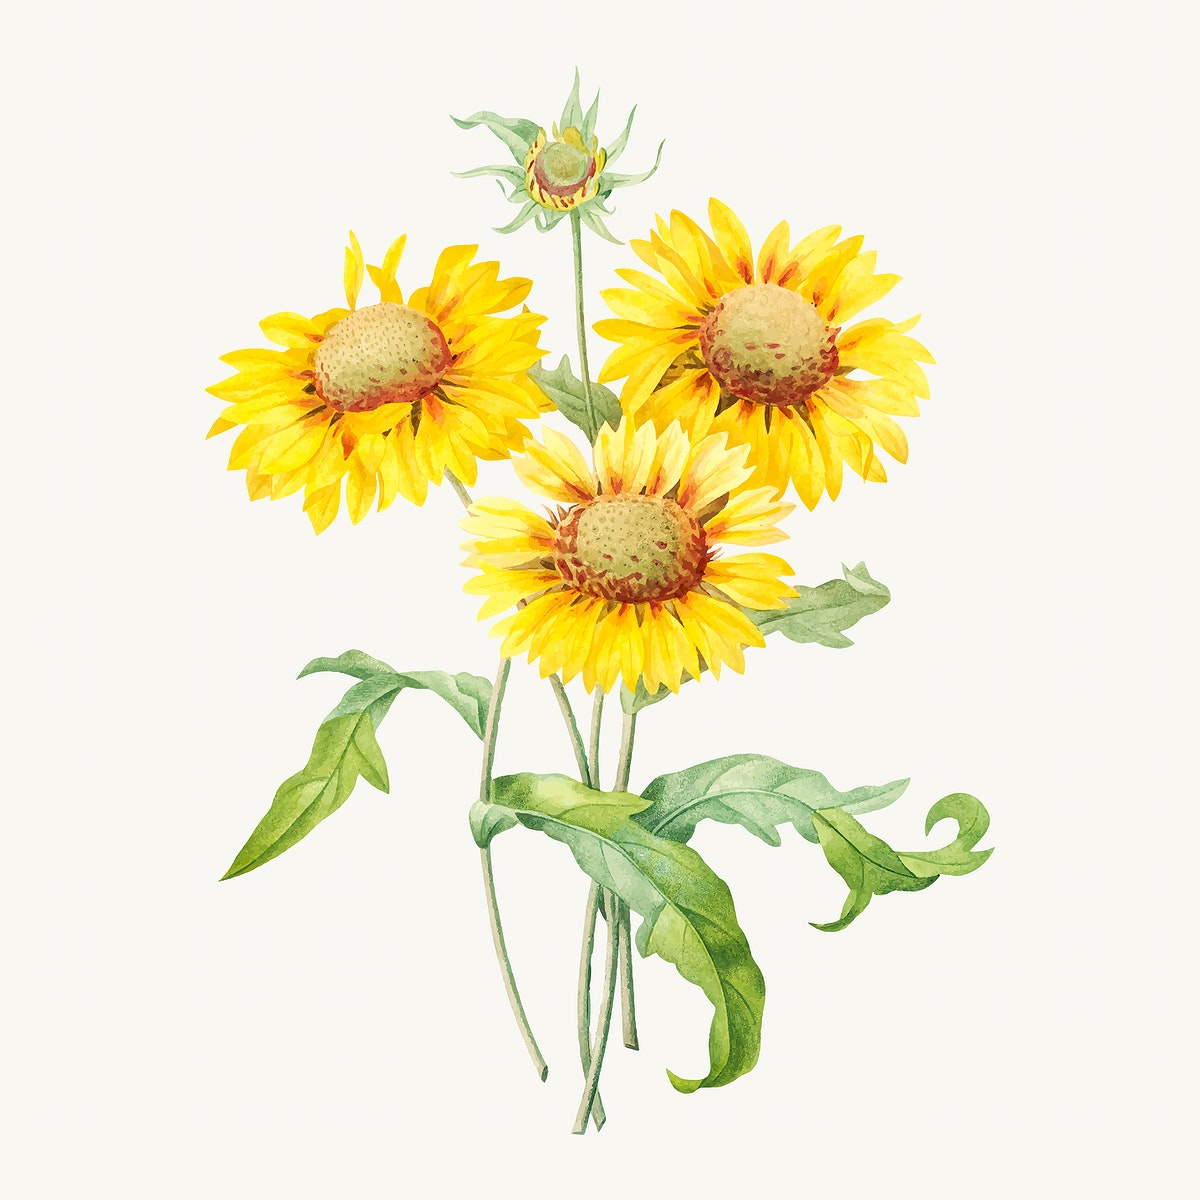 Blanket flower botanical vector, remixed from artworks by Pierre-Joseph Redouté